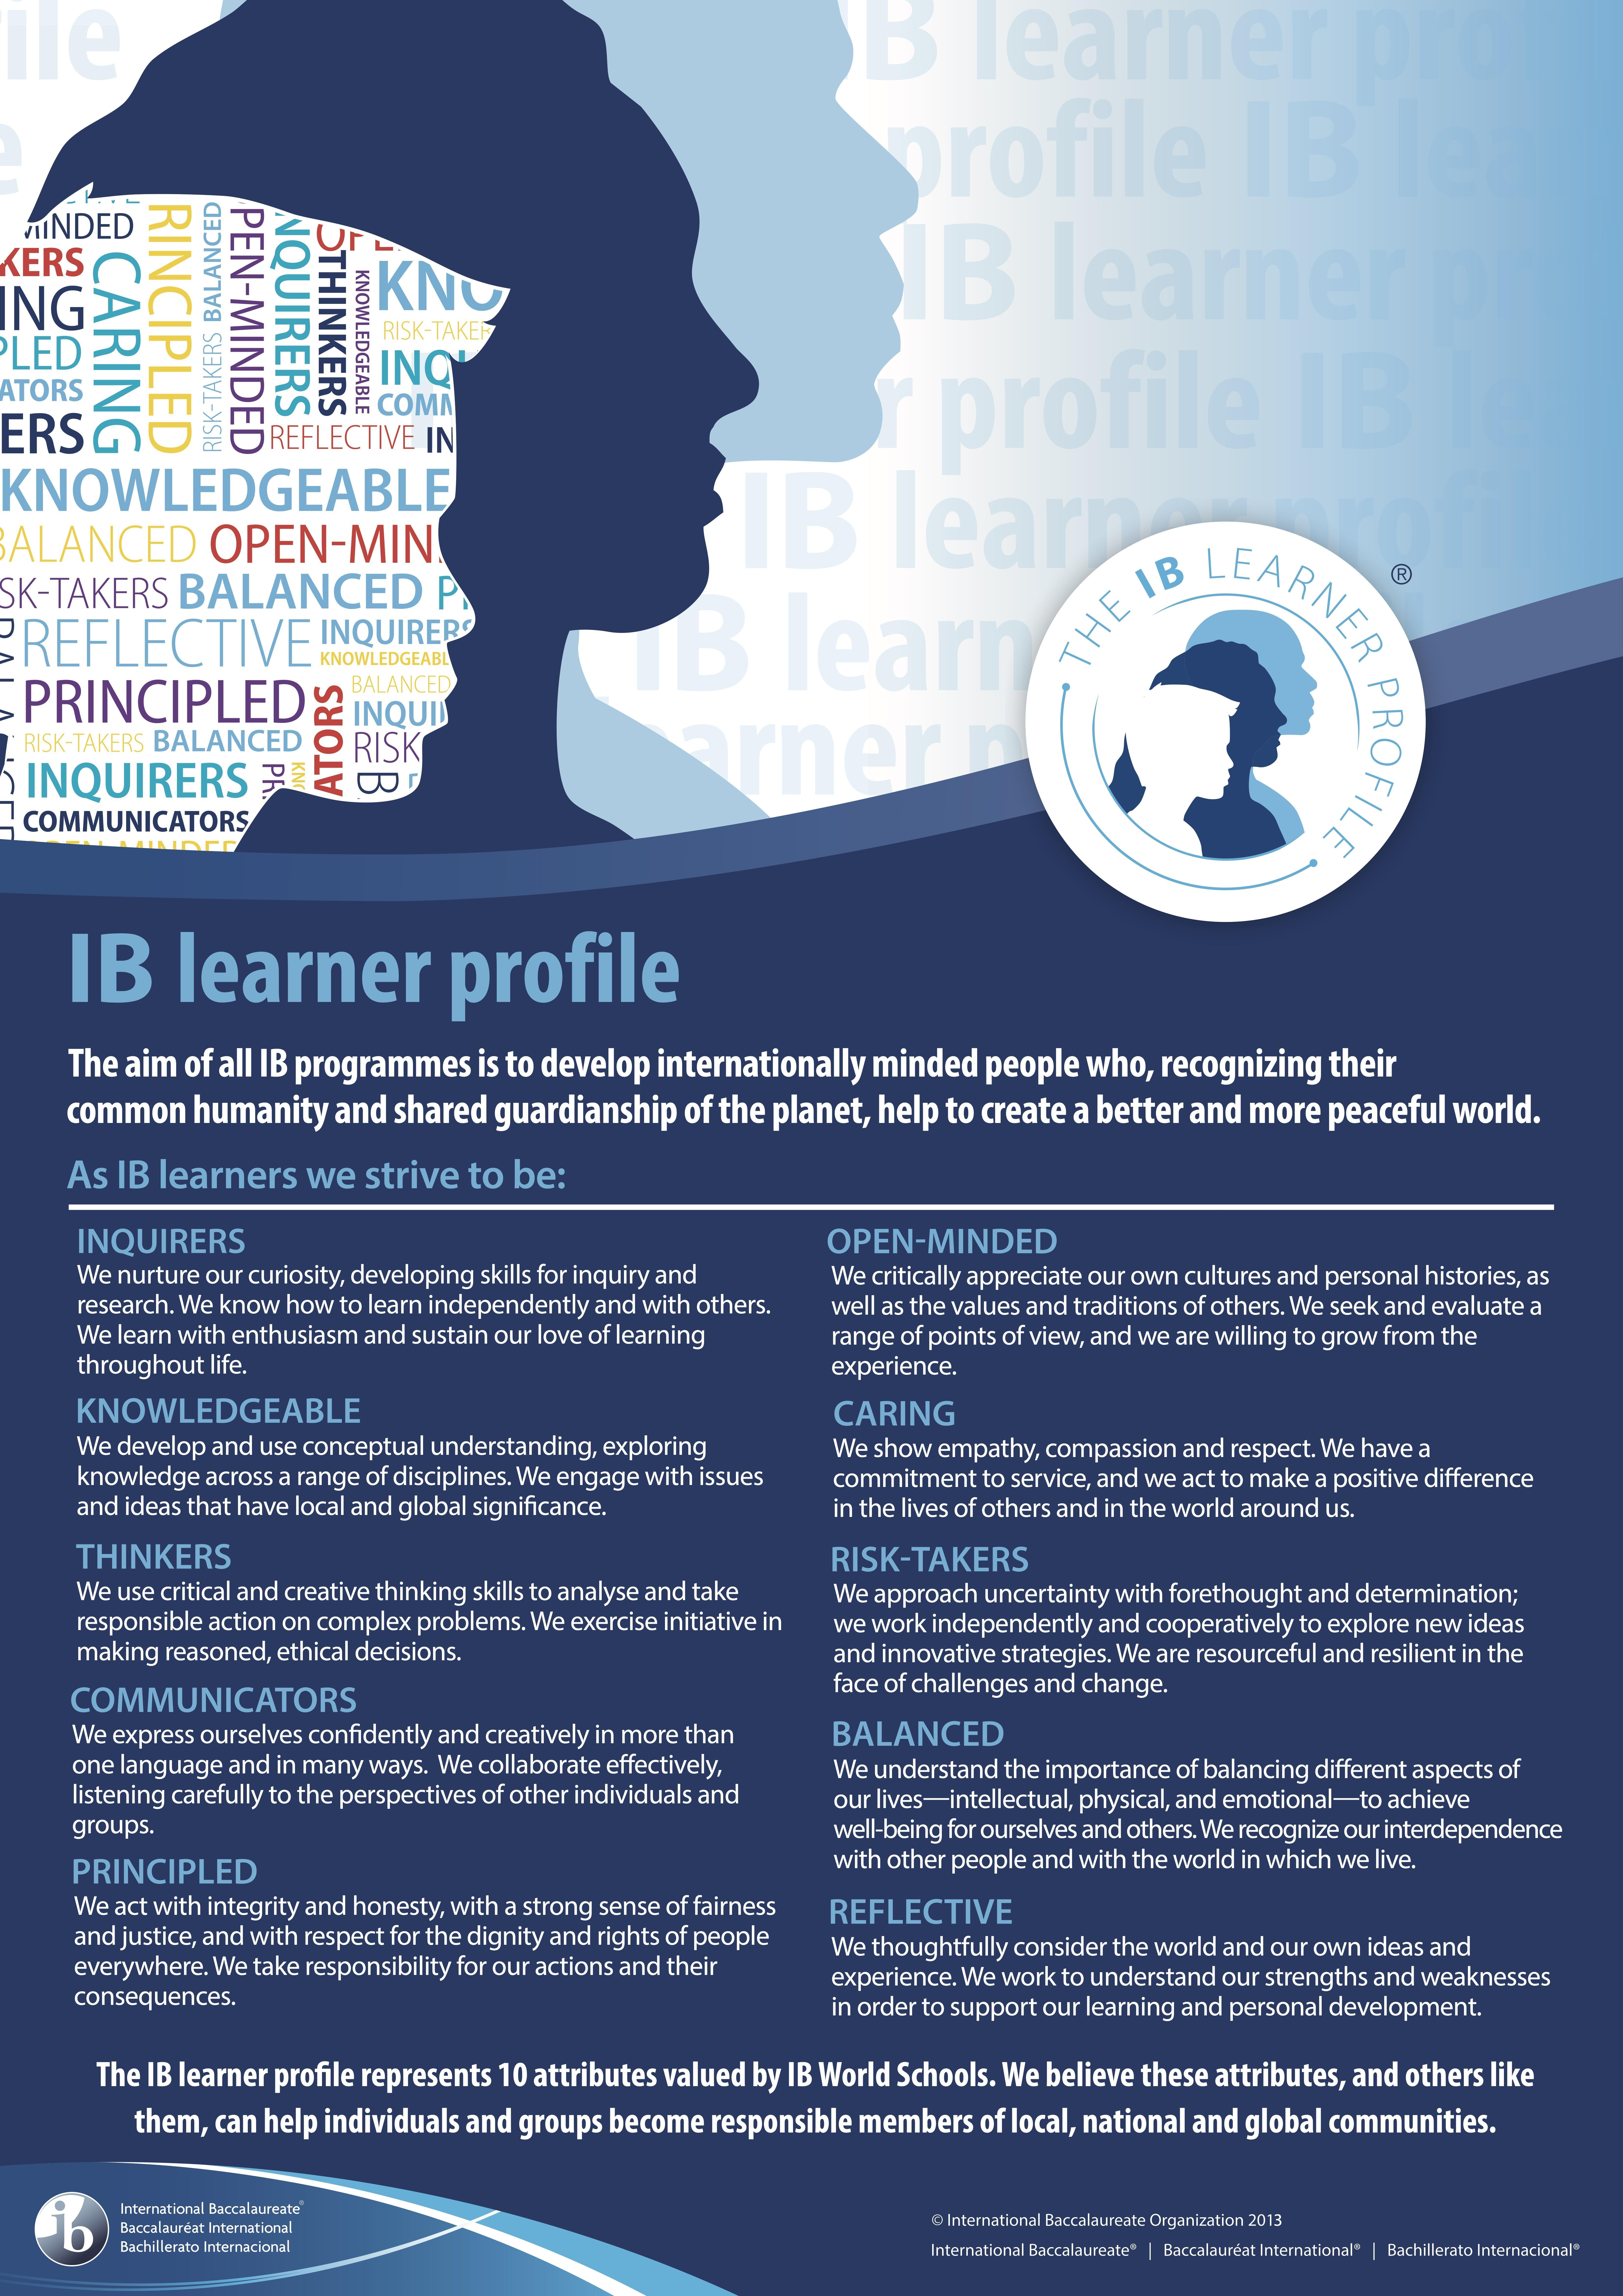 IB Learner Profile for all students